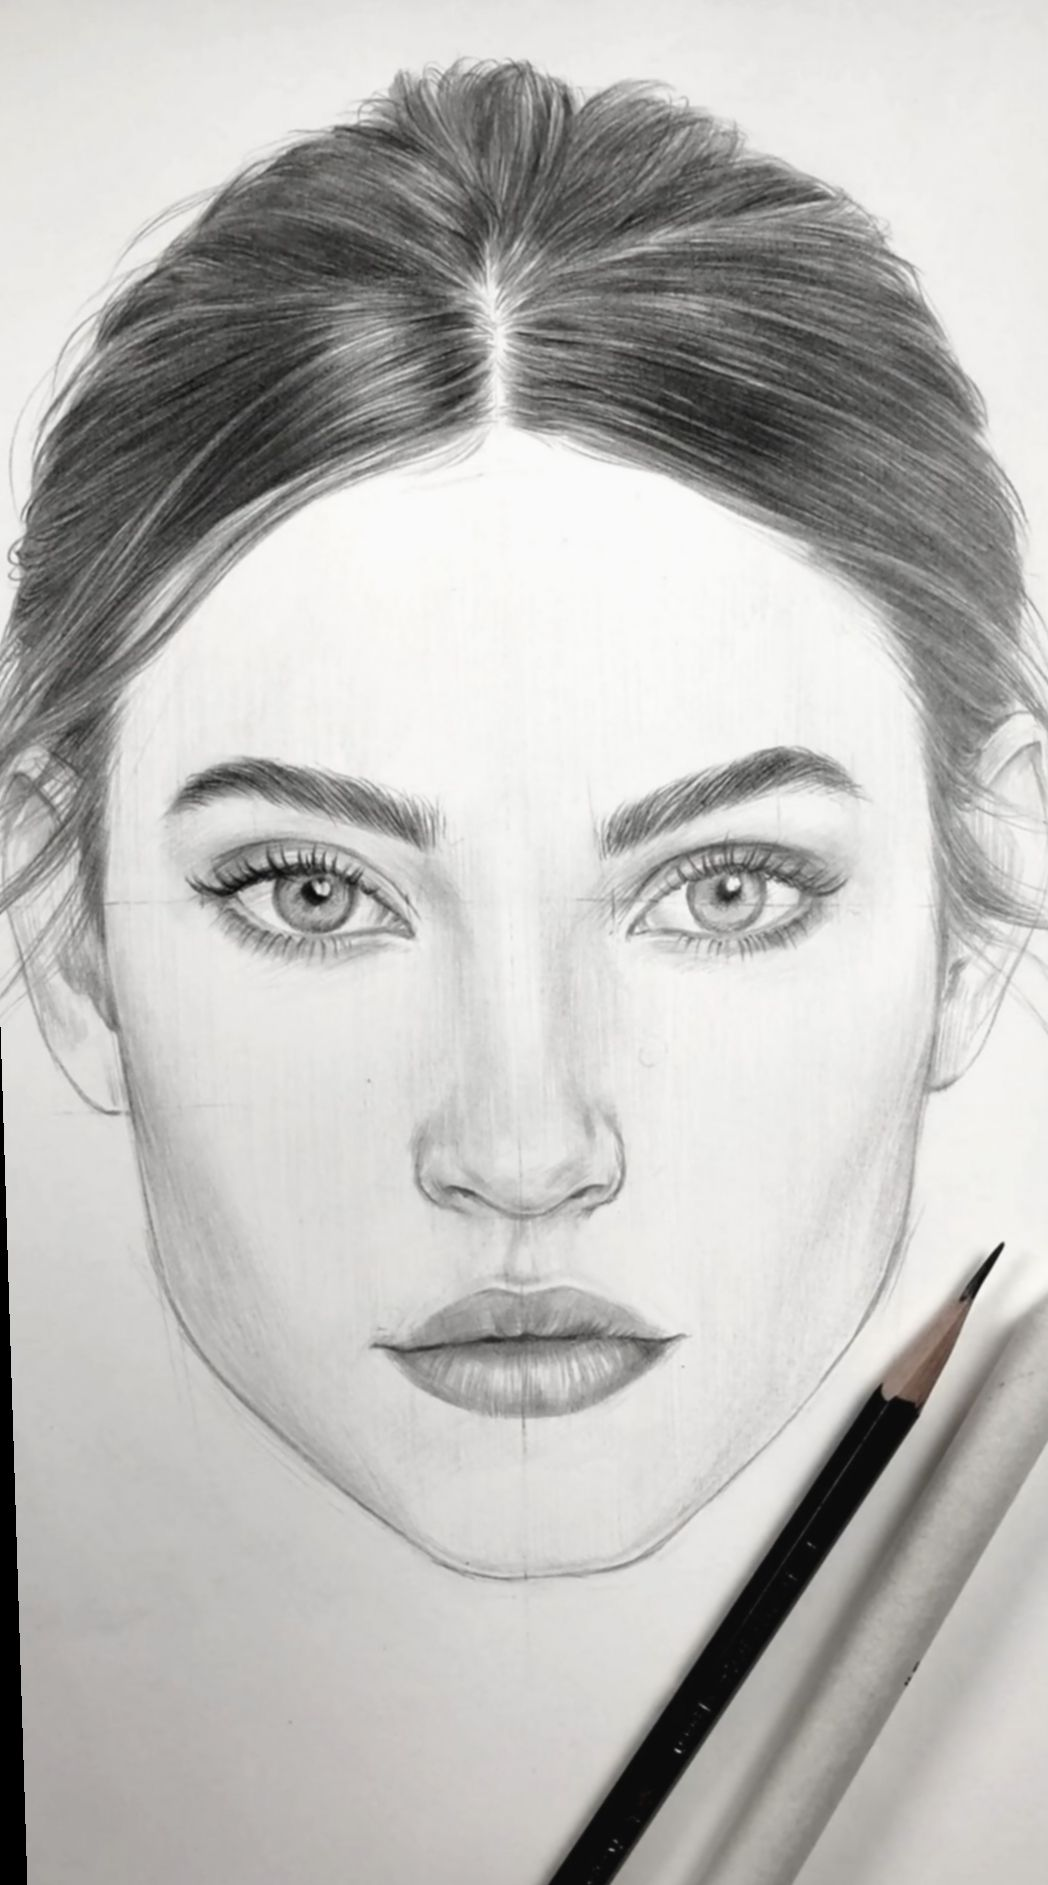 16 Drawing Faces Videos Anatomy In 2020 Face Proportions Human Face Drawing Art Drawings Sketches Pencil